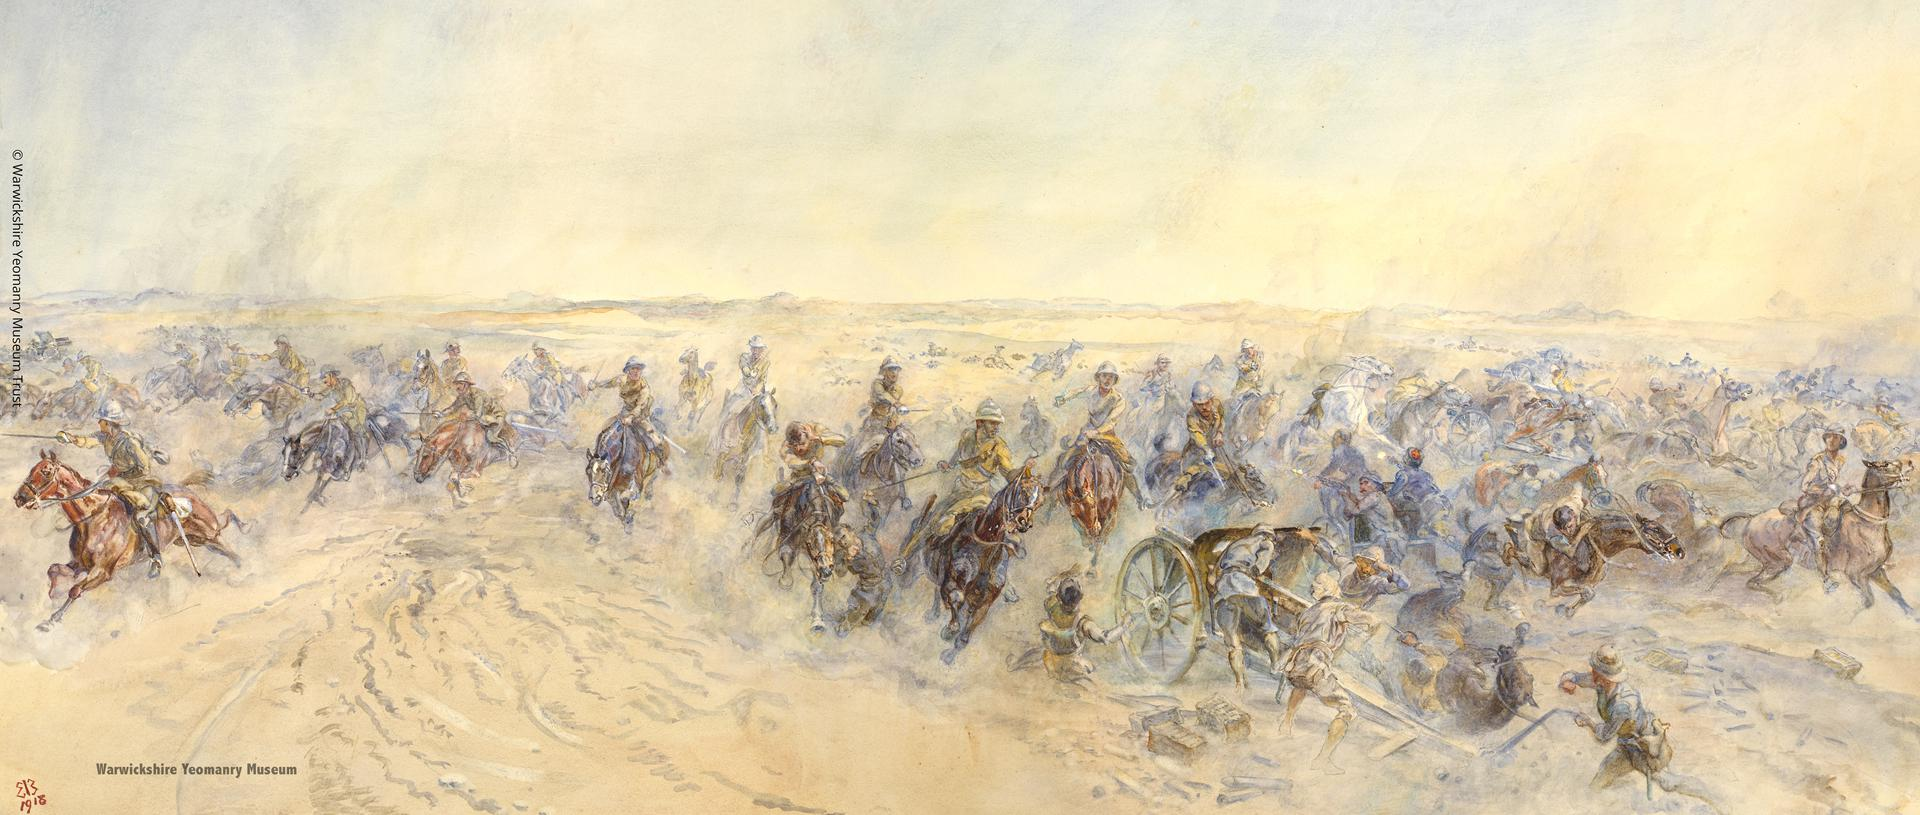 'Charge of the Warwick and Worcester Yeomanry at Huj, near Gaza, on the 8th November 1917', by Lady Elizabeth Butler. © Warwickshire Yeomanry Museum Trust. All Turkish casualties' wounds at Huj were inflicted by thrusts from the Pattern 1908 sword.